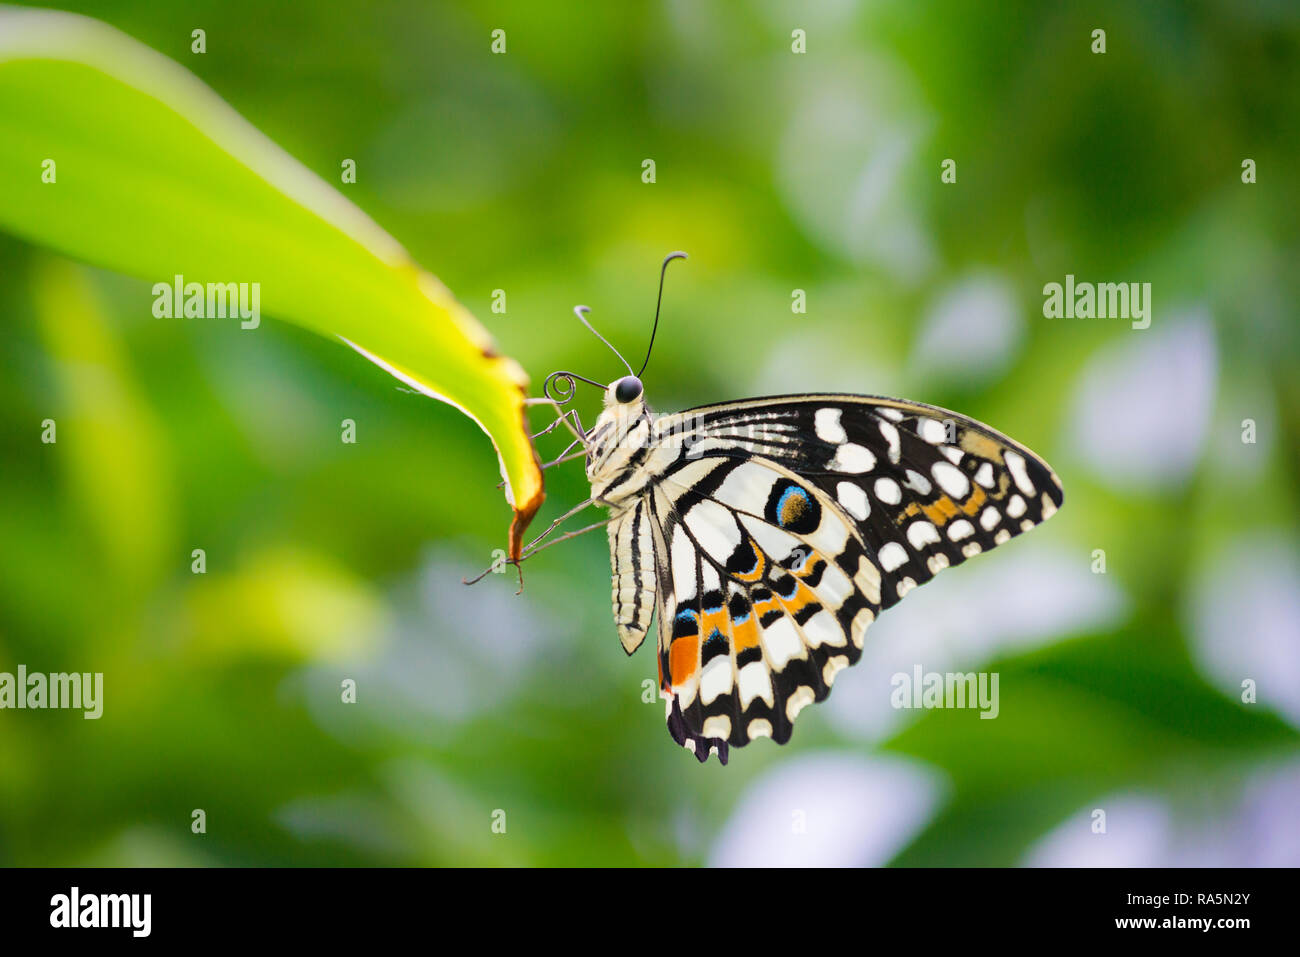 Close up macro of a Common Lime Swallowtail Butterfly resting on the tip of a green leaf with green foliage in background Stock Photo